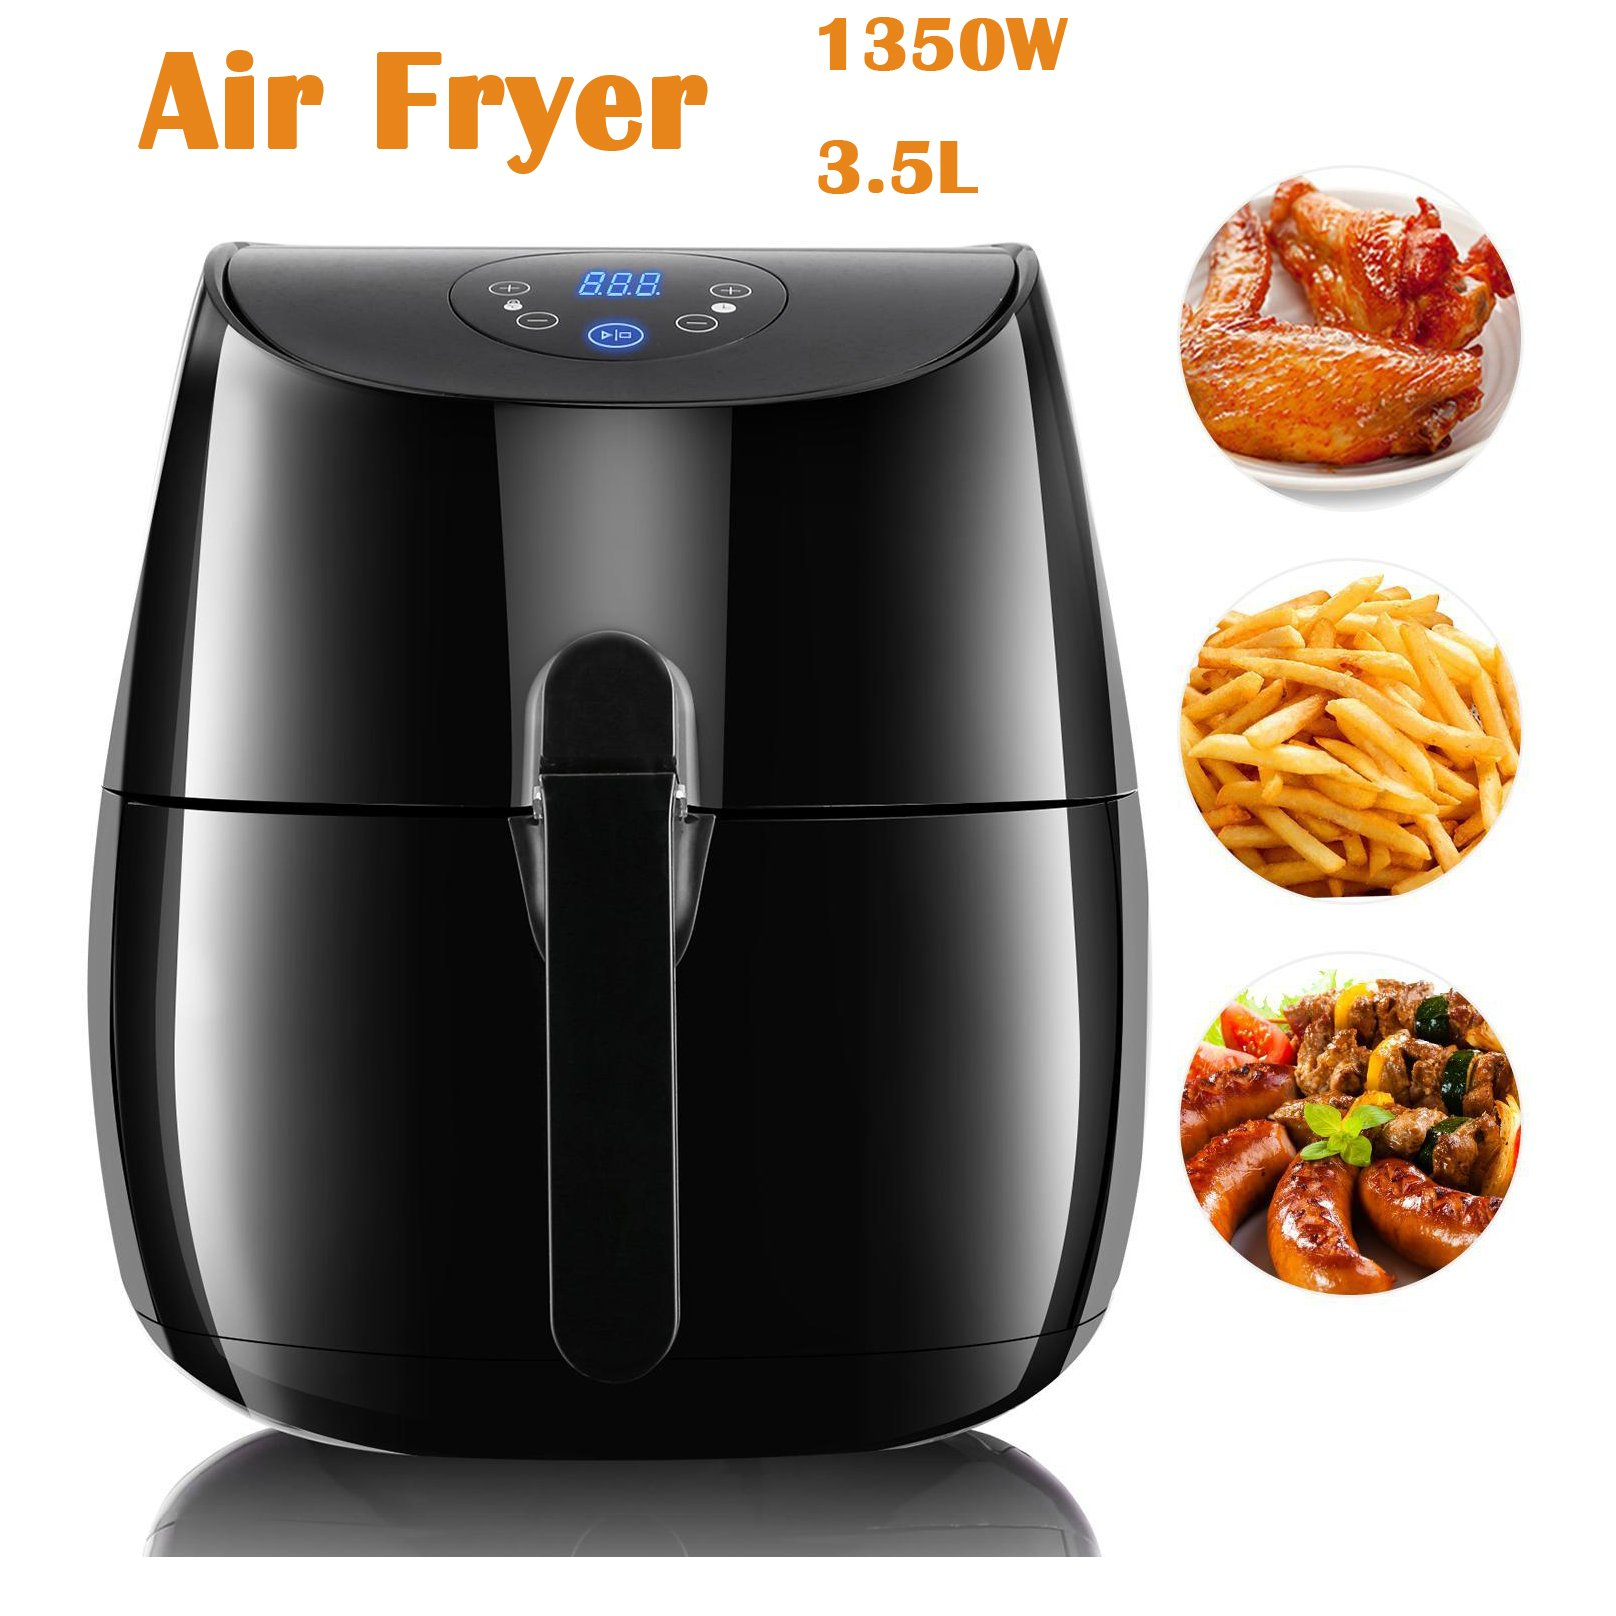 1350W 3.5L Electric Air Fryer, 3.7QT Multi-Function Oil Free Hot Air Fryer Cooker with Timer and Temperature Control for Healthy Cooking